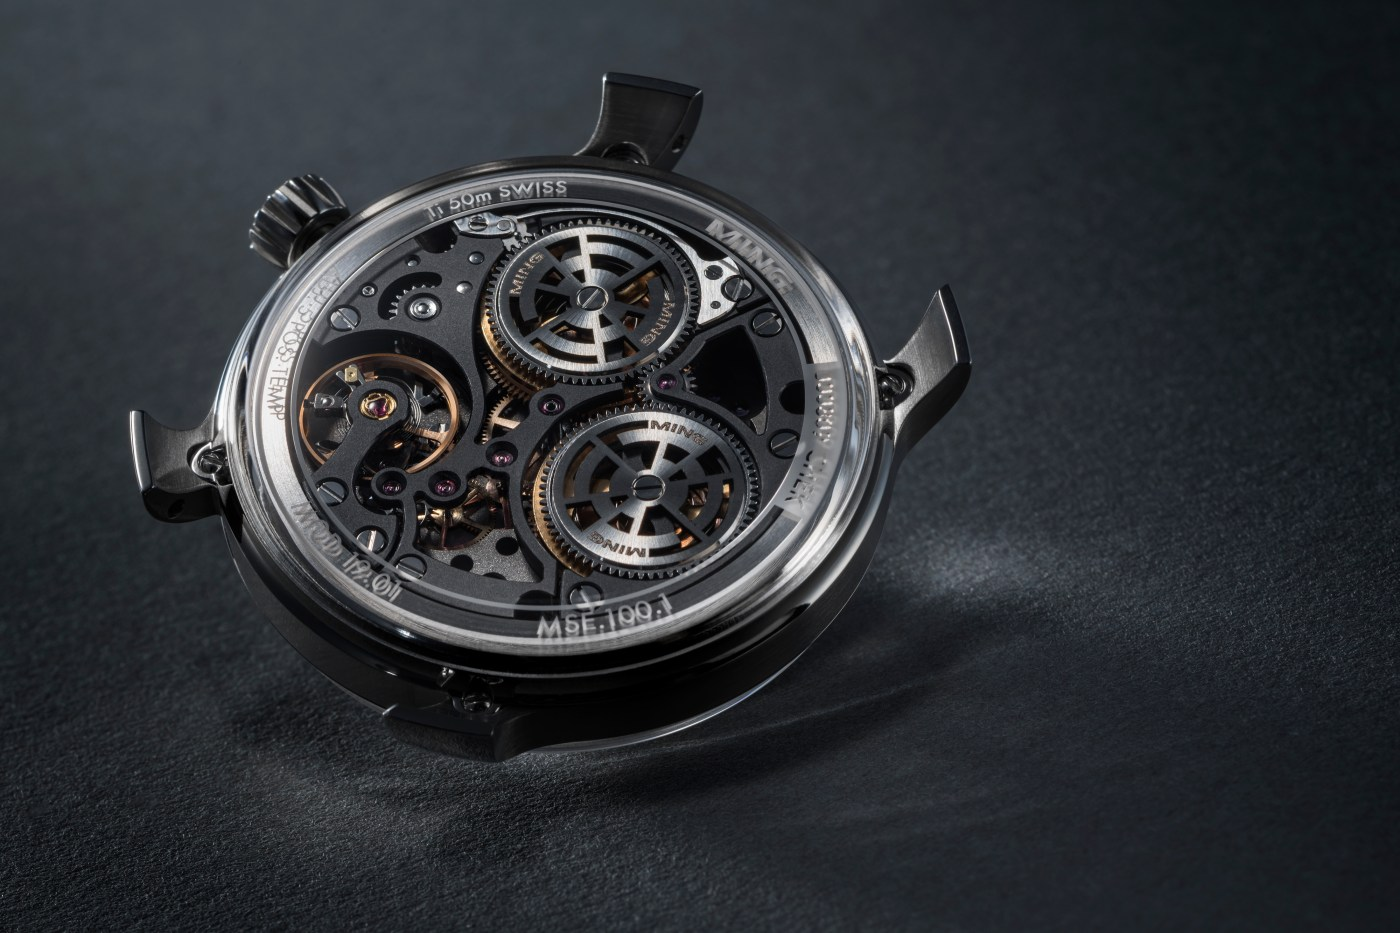 Ming 19.01 watches